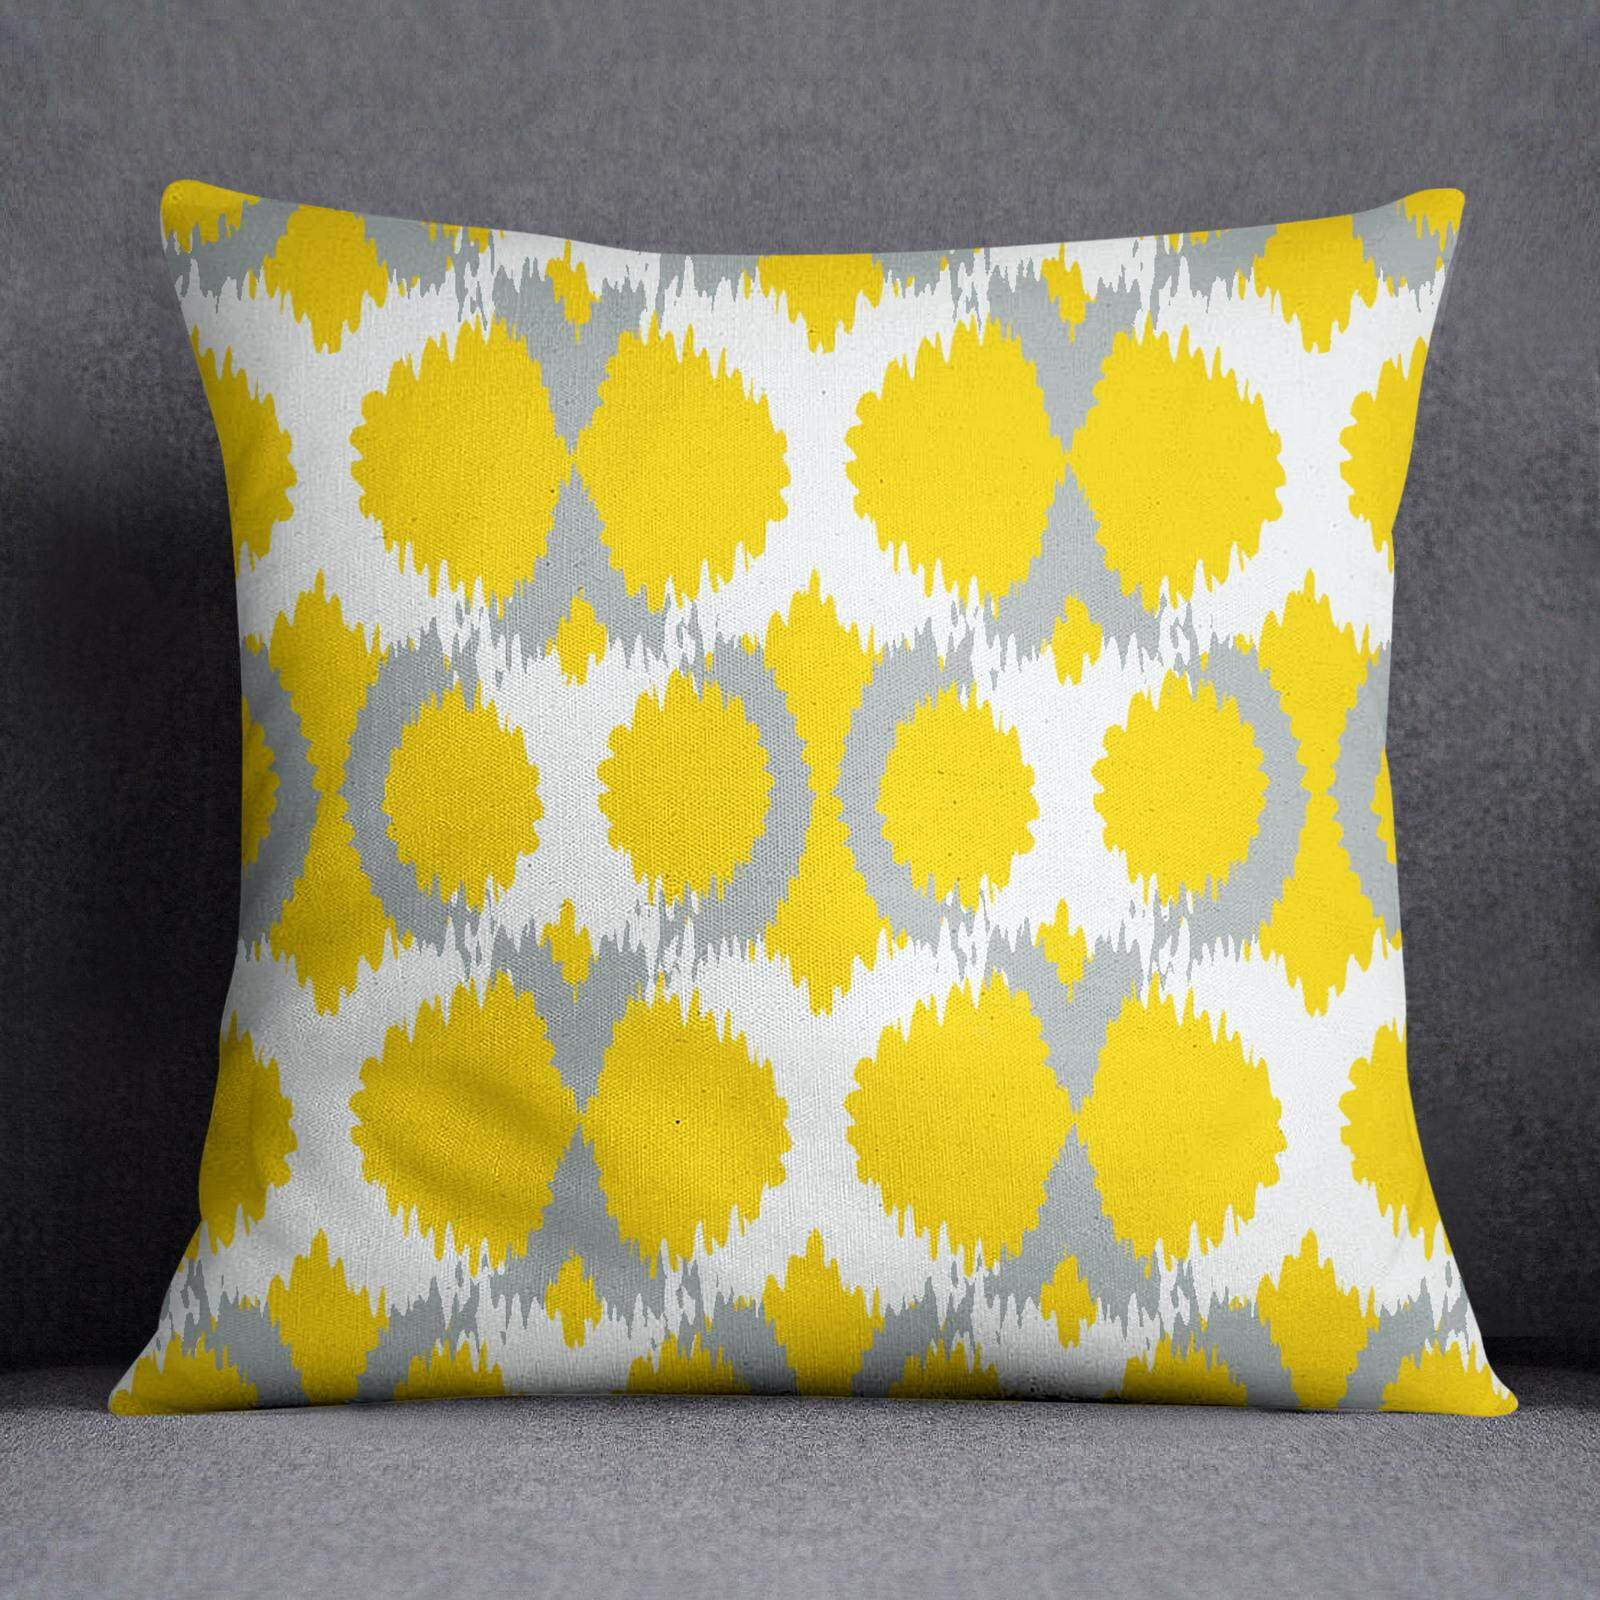 S4Sassy Decorative Yellow Pillow Case Throw Square Cushion Cover Ikat